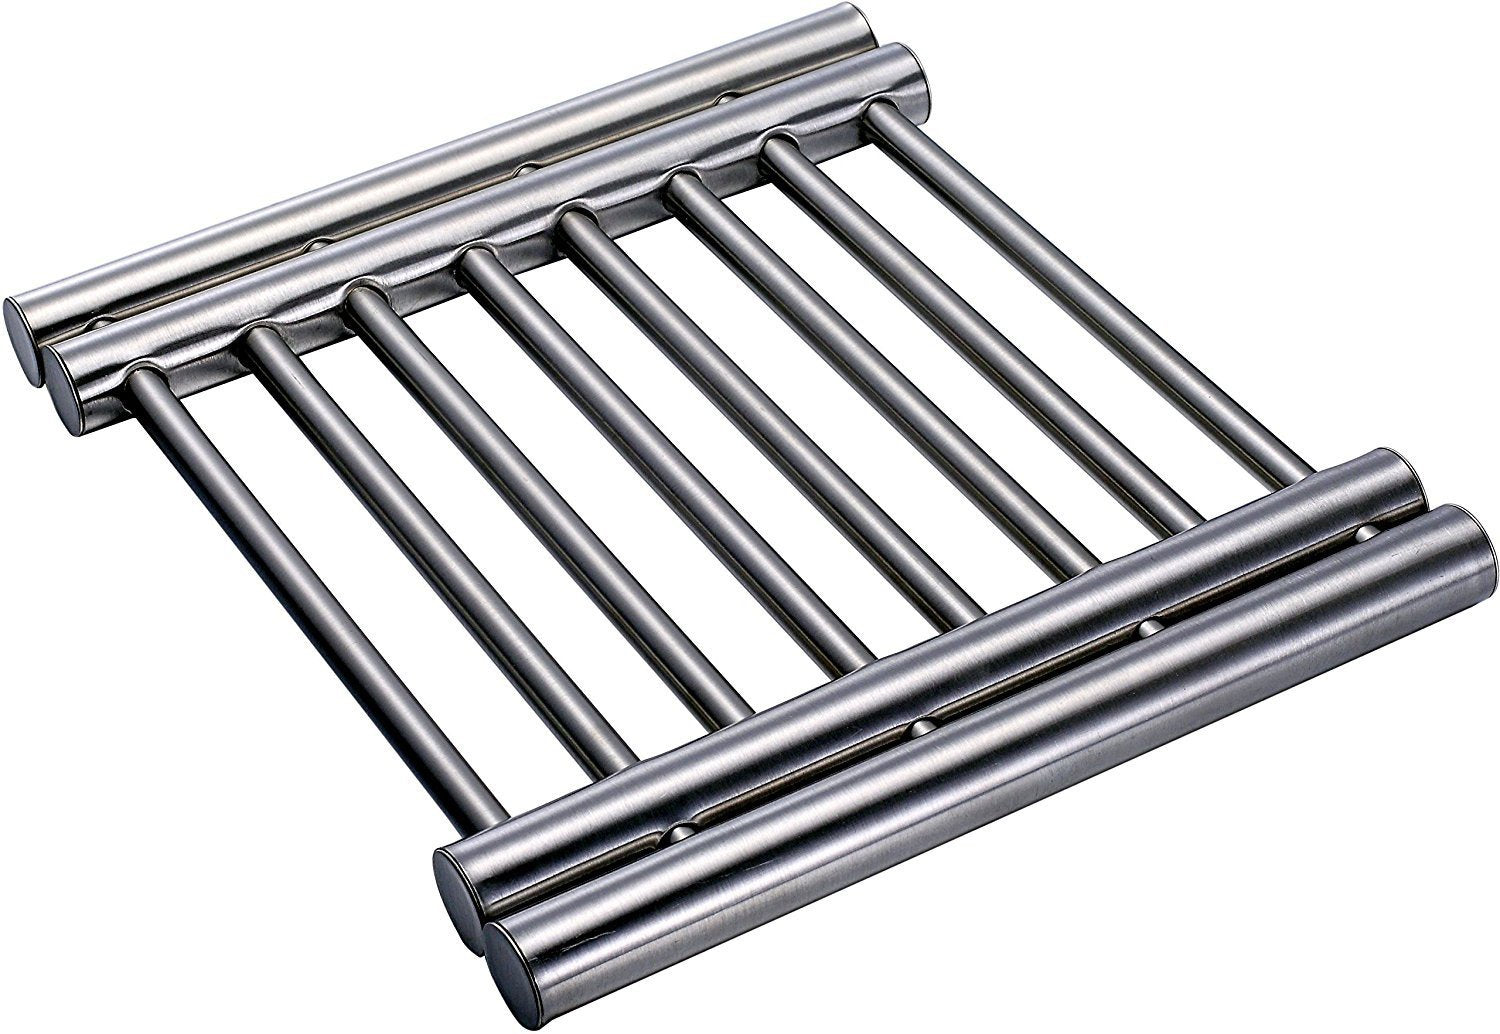 Trivets For Hot Dishes - Hot Plate Holder Metal Cooling Rack Expandable Trivet To Protect Counter Table Top Serving Of Instapot Slow Cookers - Instant Pots And Crock Pot Liners by Pro Chef Kitchen Tools